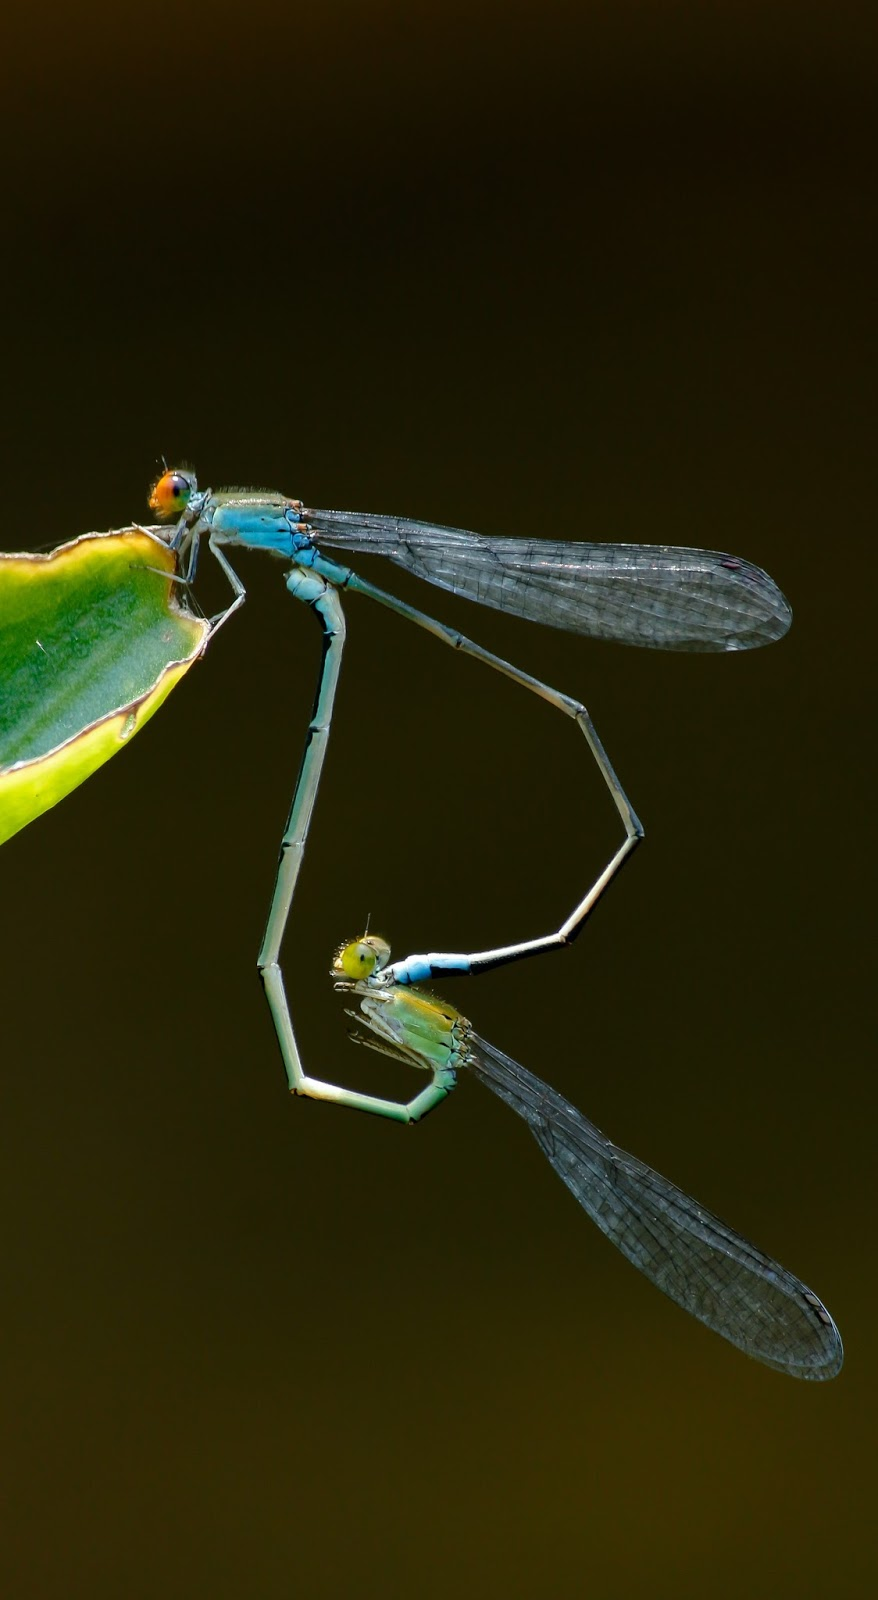 Picture of dragonflies mating.